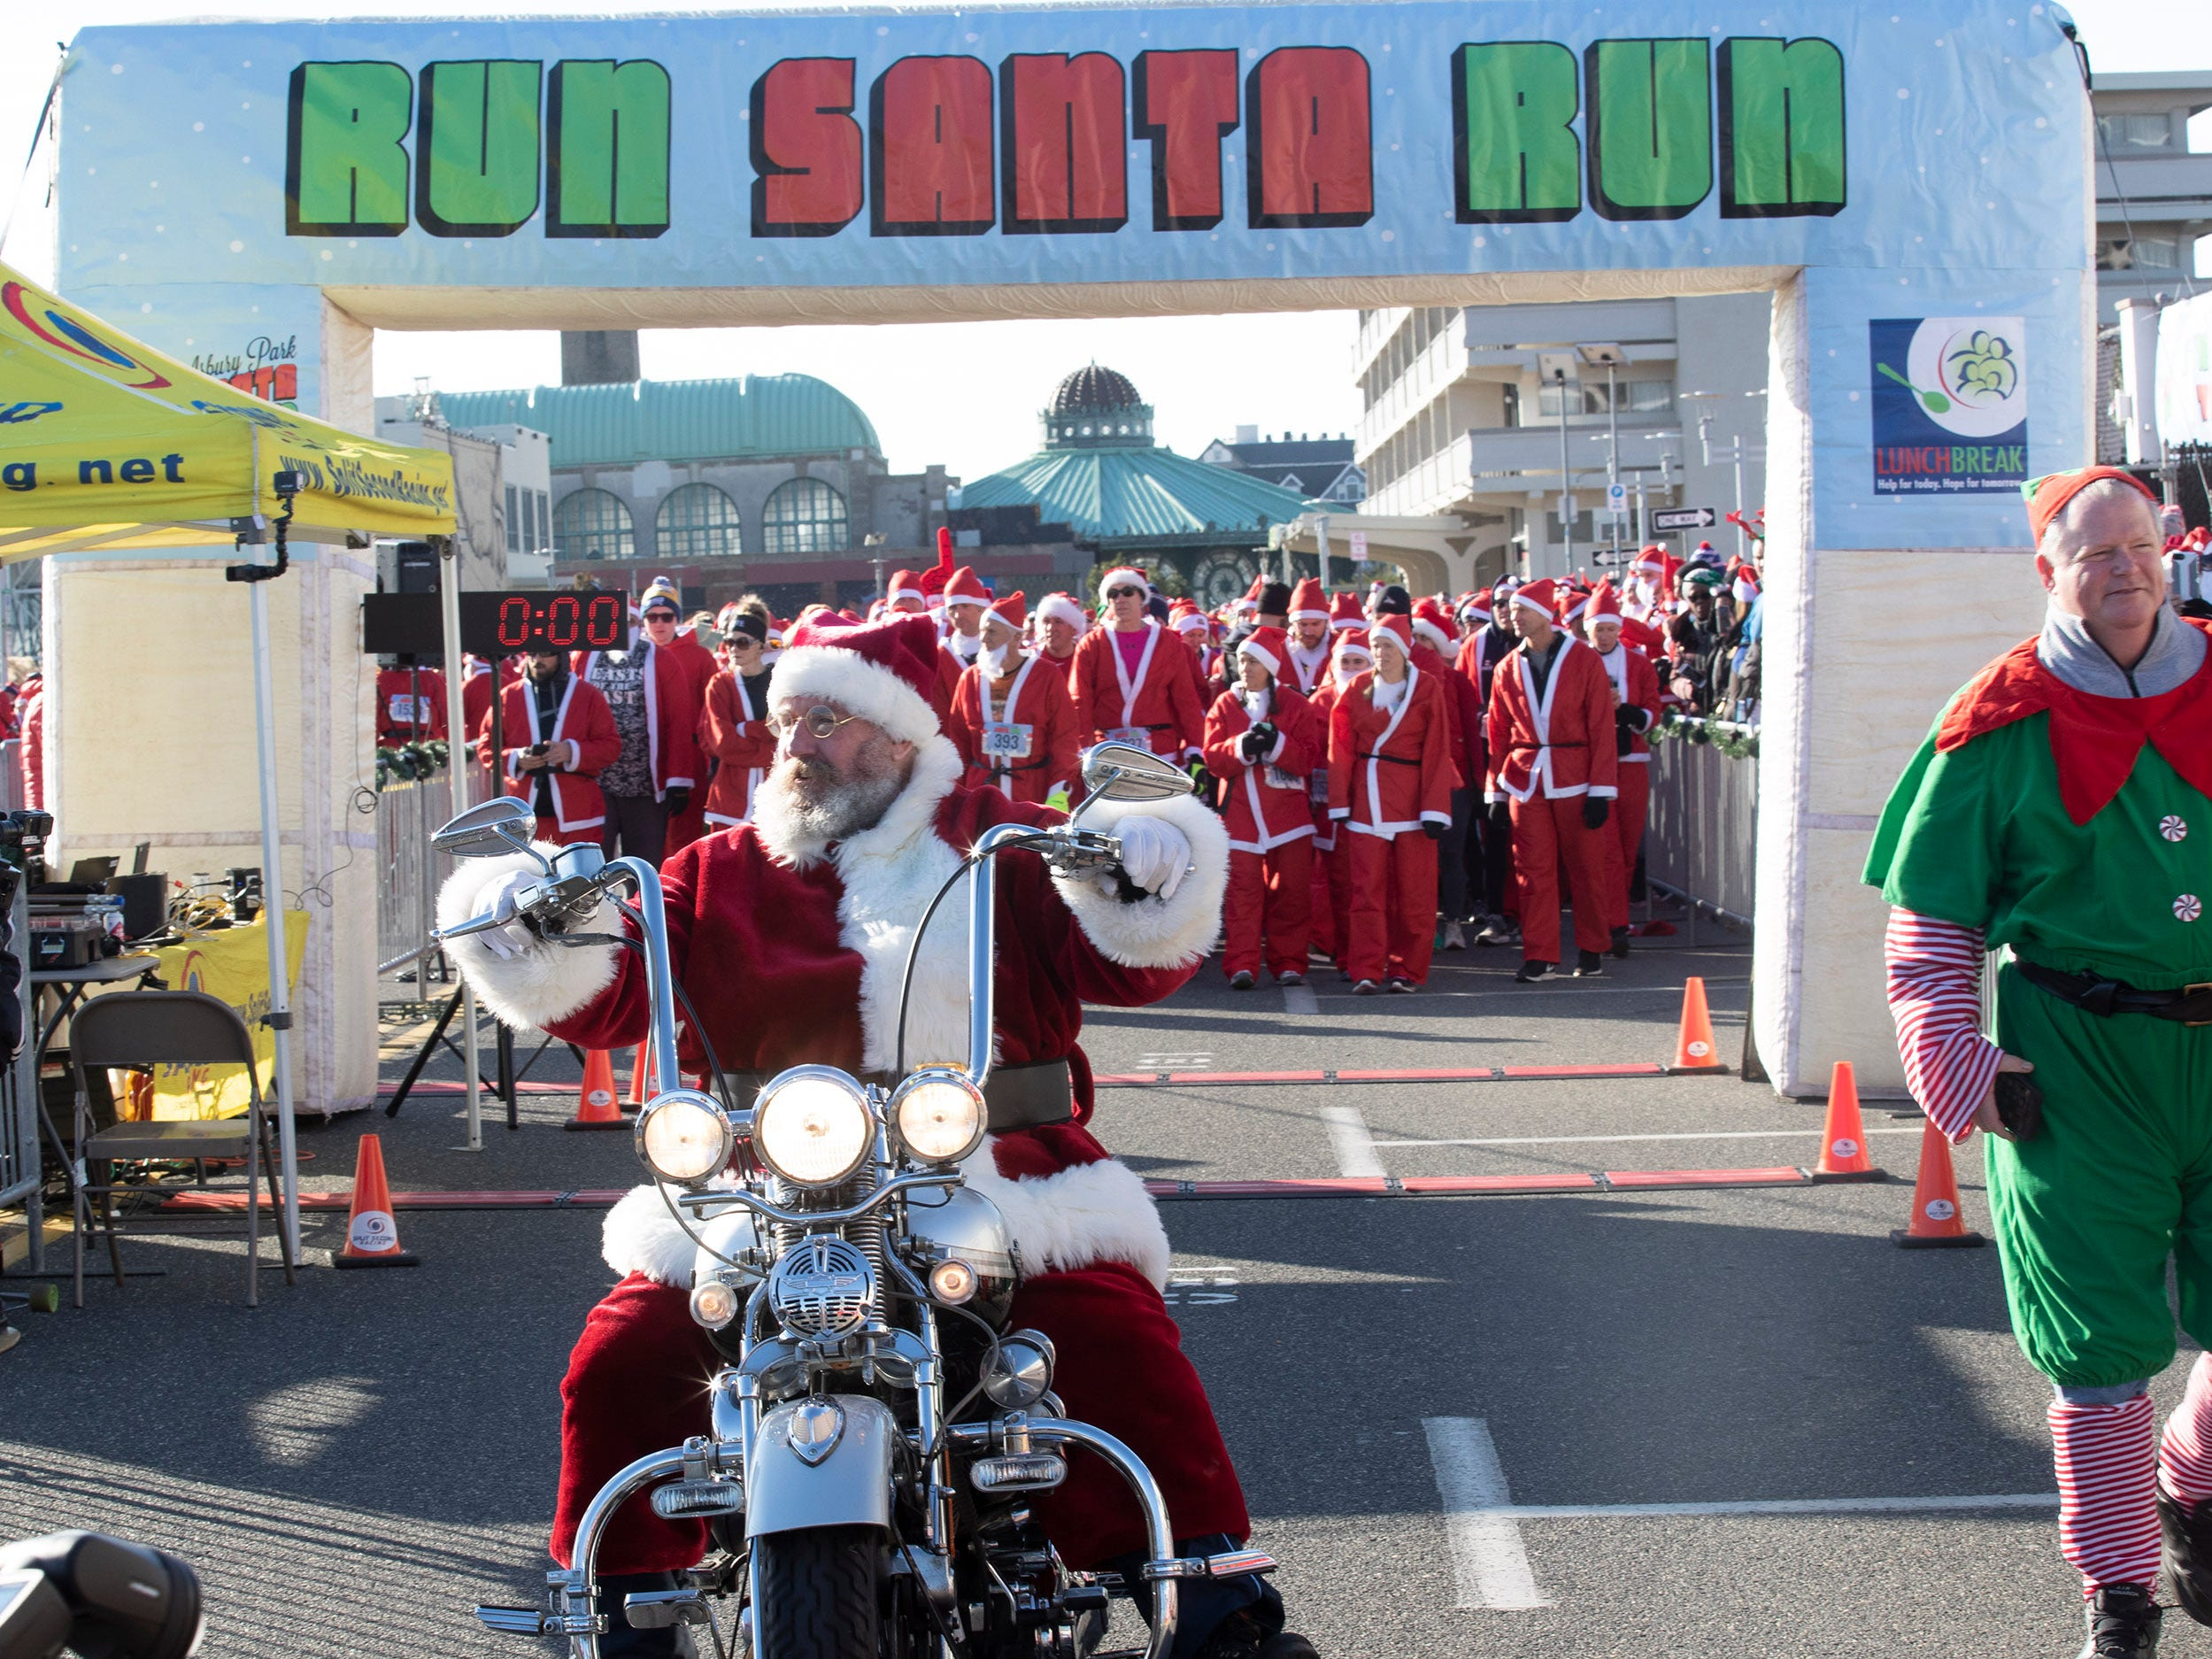 Brian Sheehy of Colts Neck lead the race on motorcycle. Runners brave the cold to participate in the annual Santa Run 5K in Asbury Park on December 8, 2018.